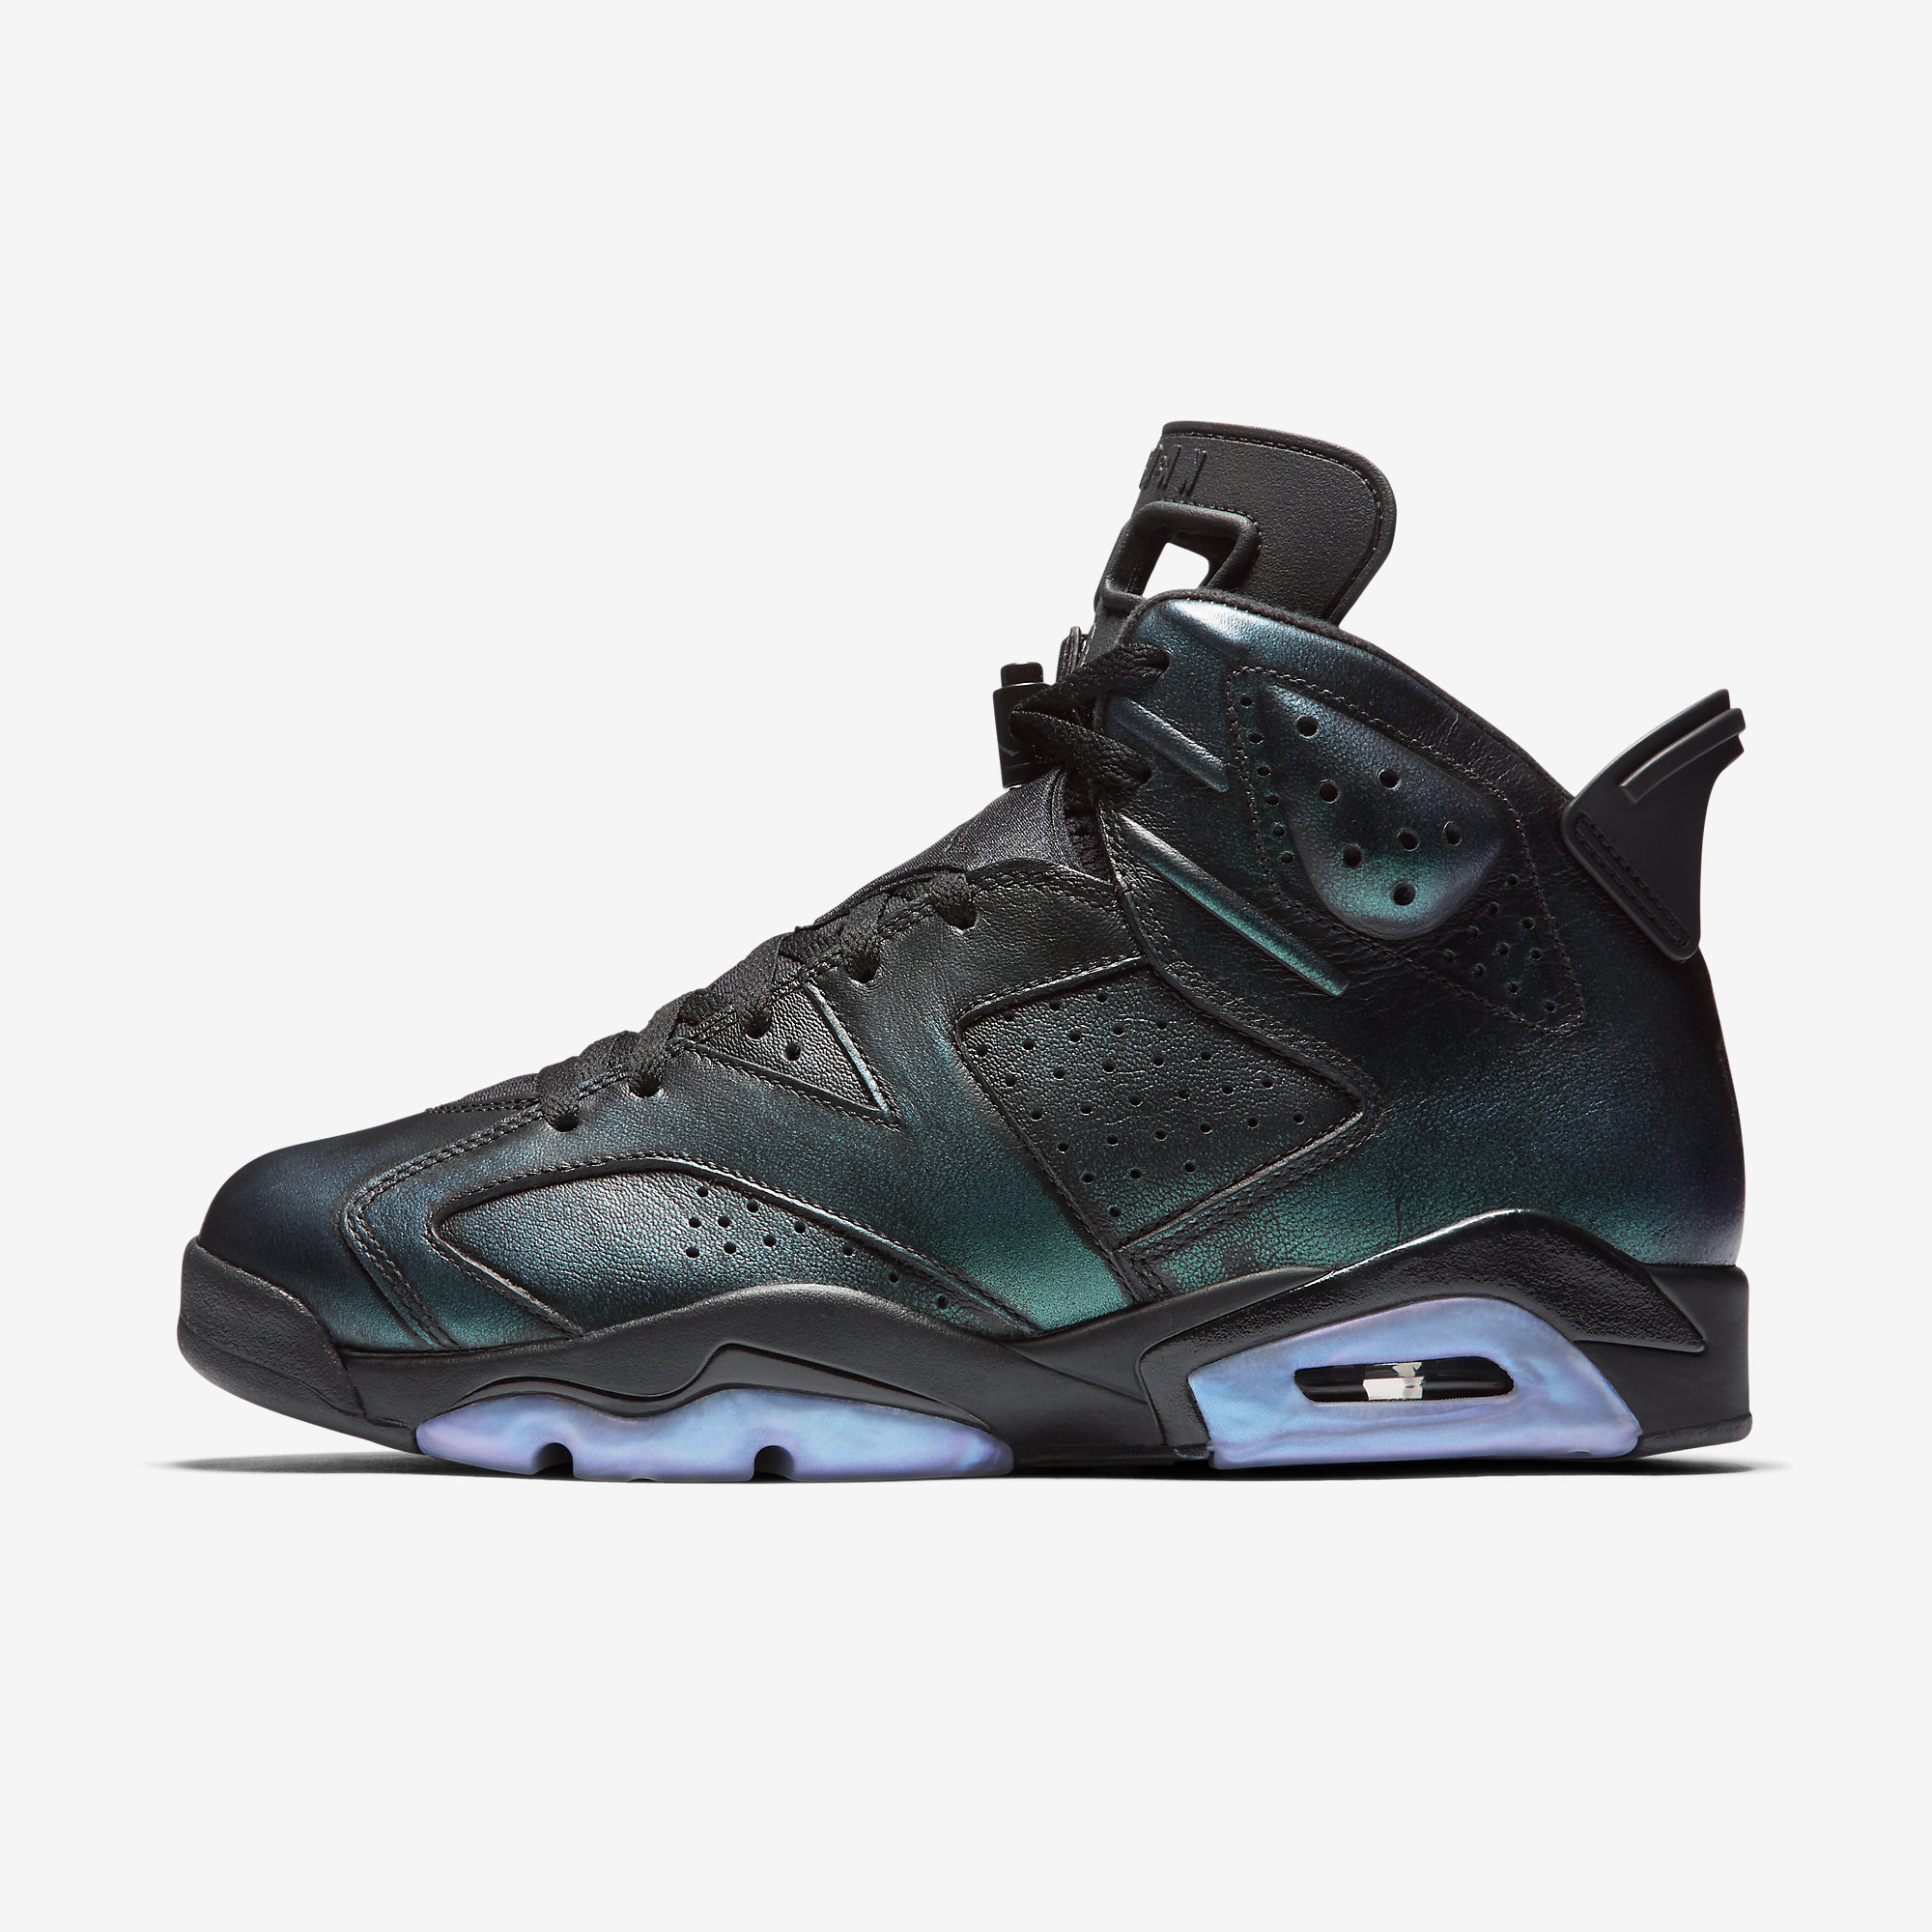 ec2fe5736bfdb0 ... get mens air jordan retro 6 vi all star chameleon black metallic silver  white 907961 015